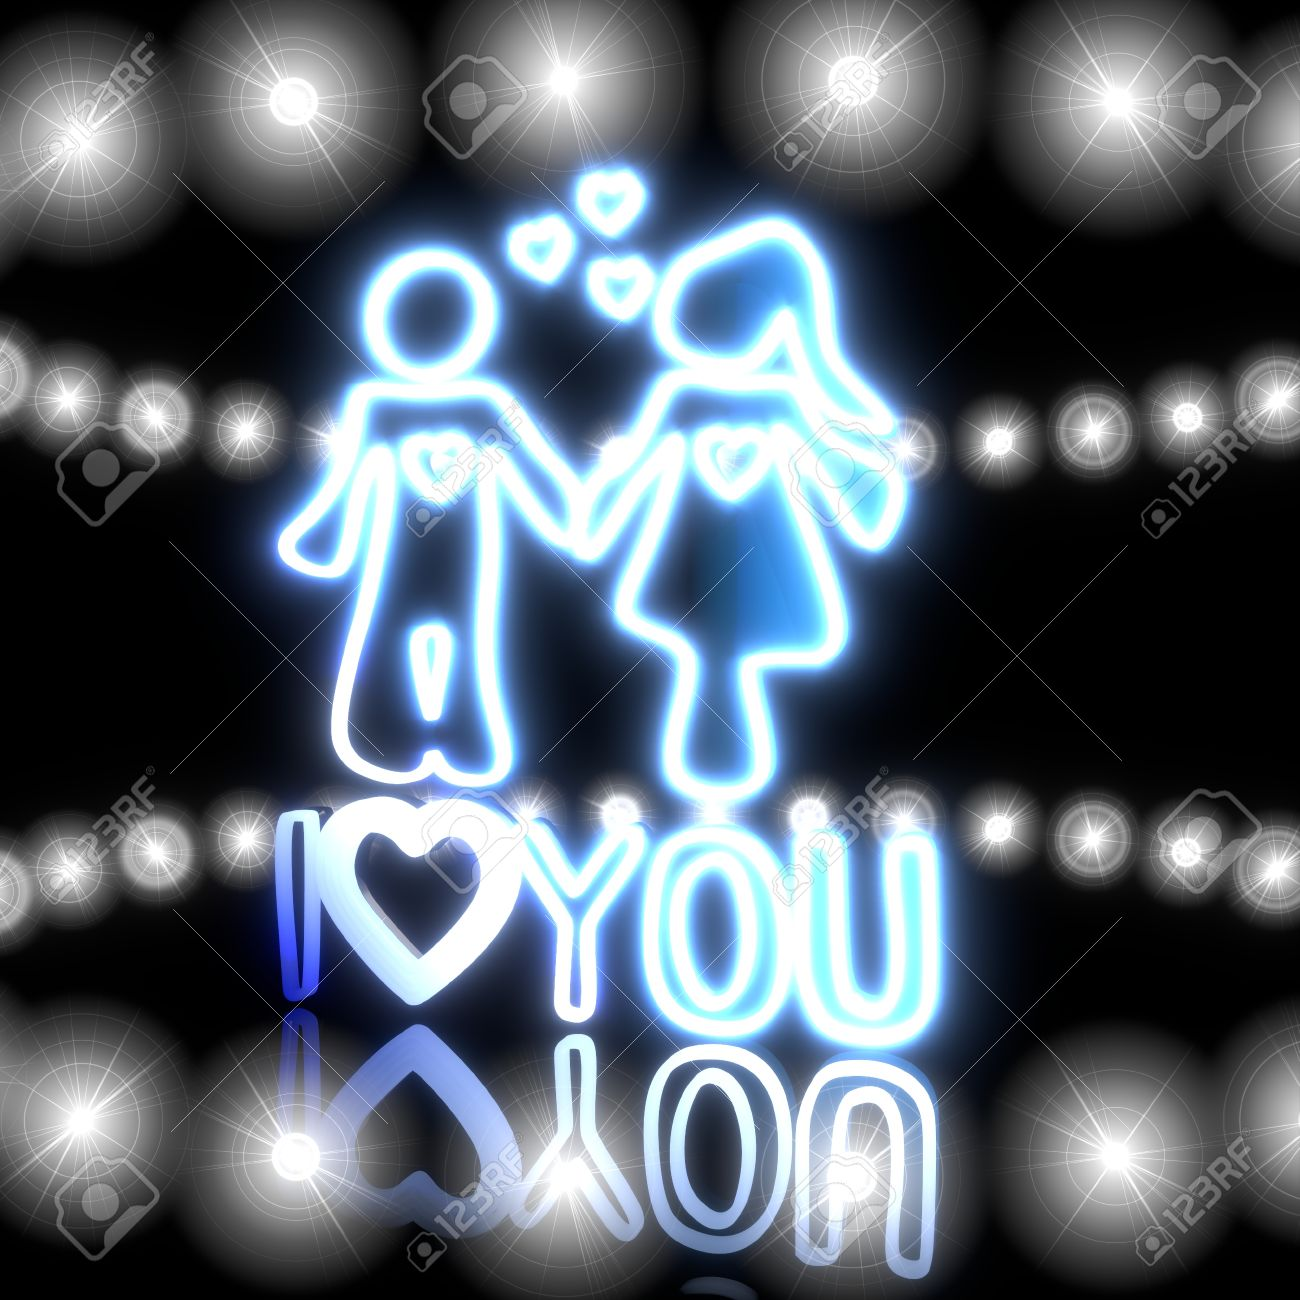 Cool Black Neon Design 3d Graphic With Magic I Love You Symbol Shining Effect Lights